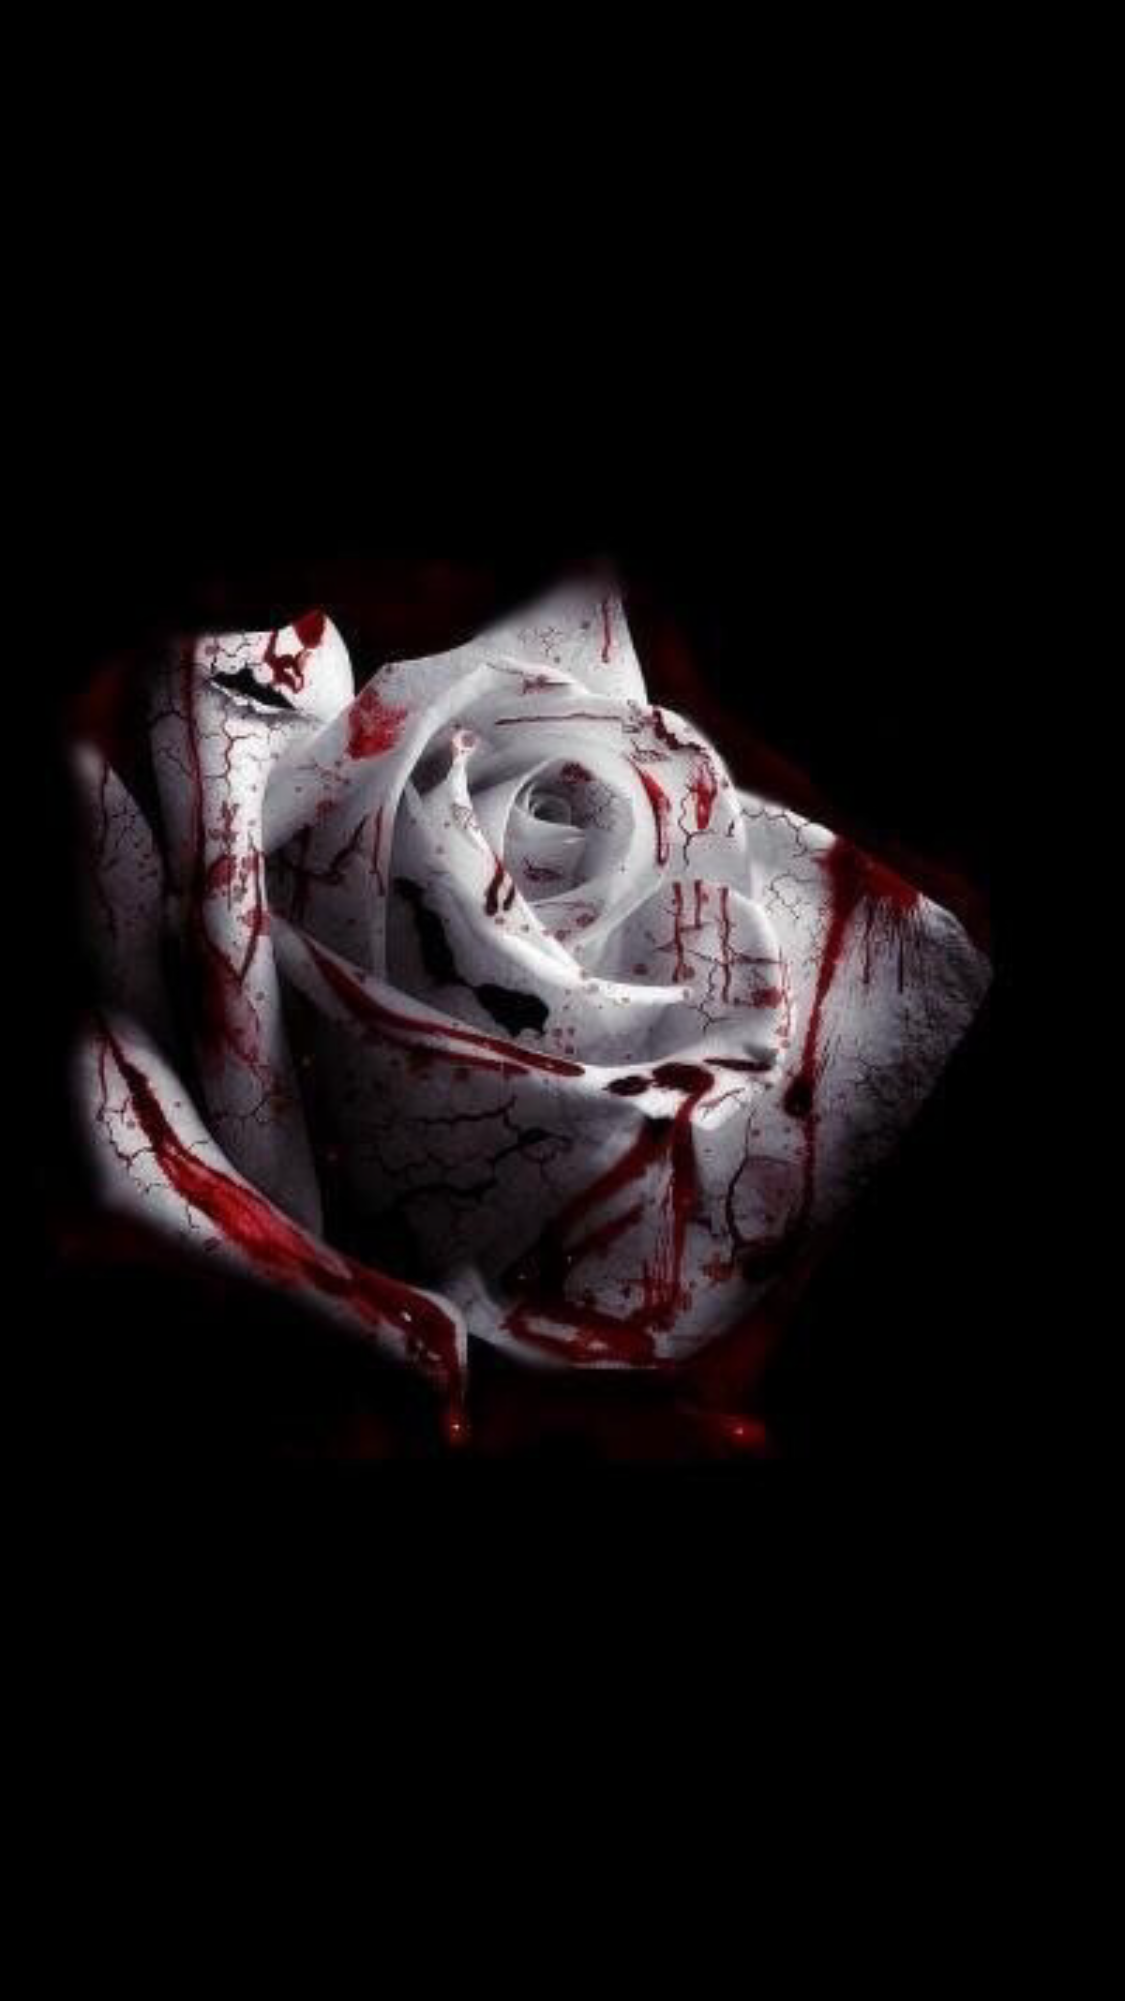 Pin By Rafaela Aliaga On Images Halloween Wallpaper Scary Wallpaper Rose Wallpaper